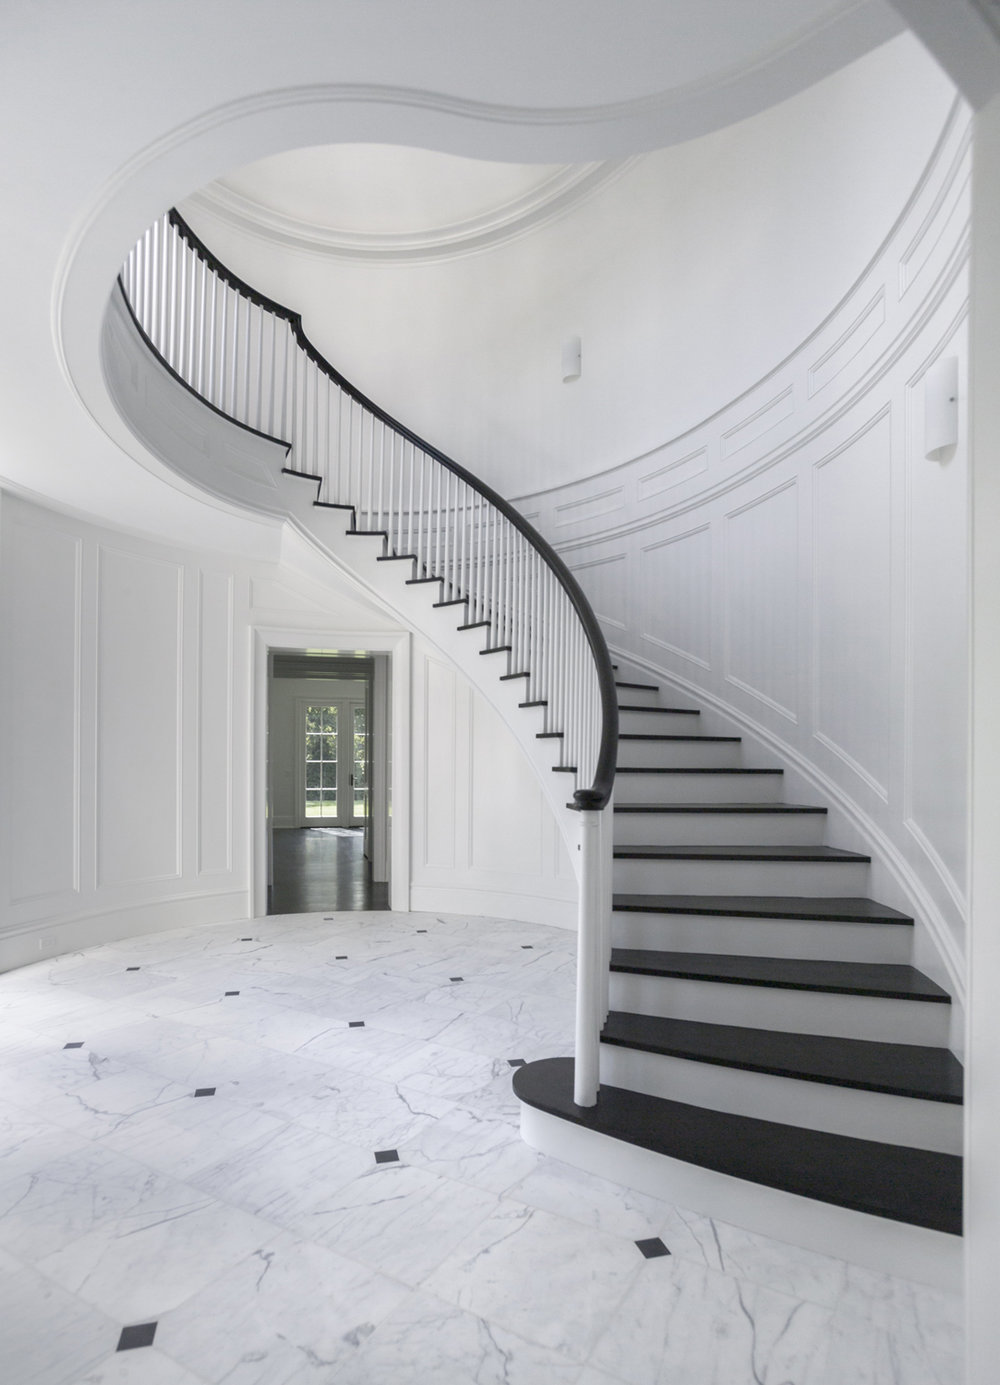 Limestone-edwardian-new-construction-grand-staircase-custom-millwork-greenwich-ct-interior-w.jpg